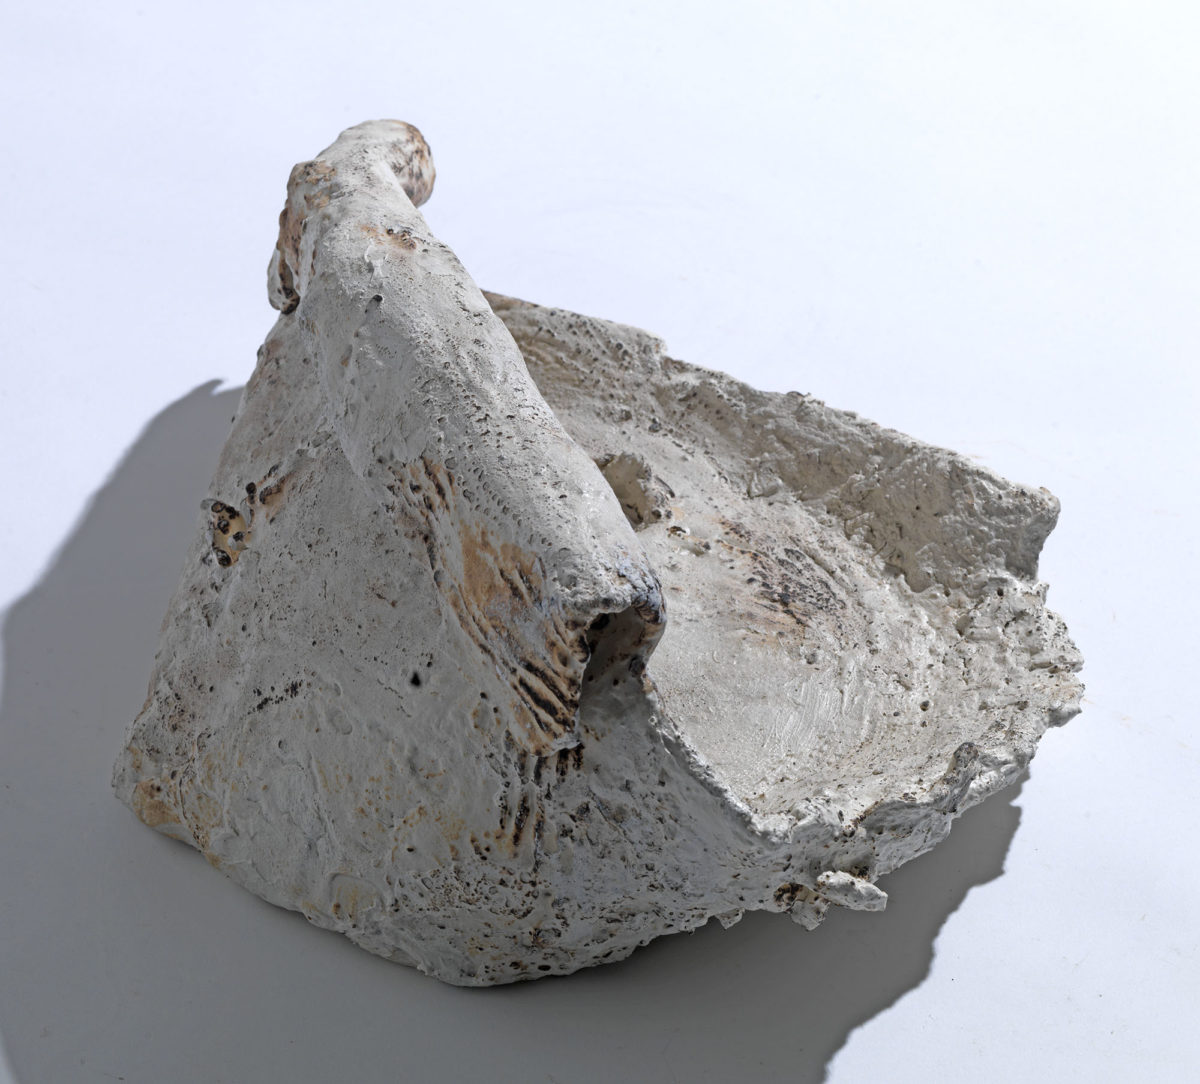 Mixed Media: burned  grey and white cement -resins.Dimensions 21X17